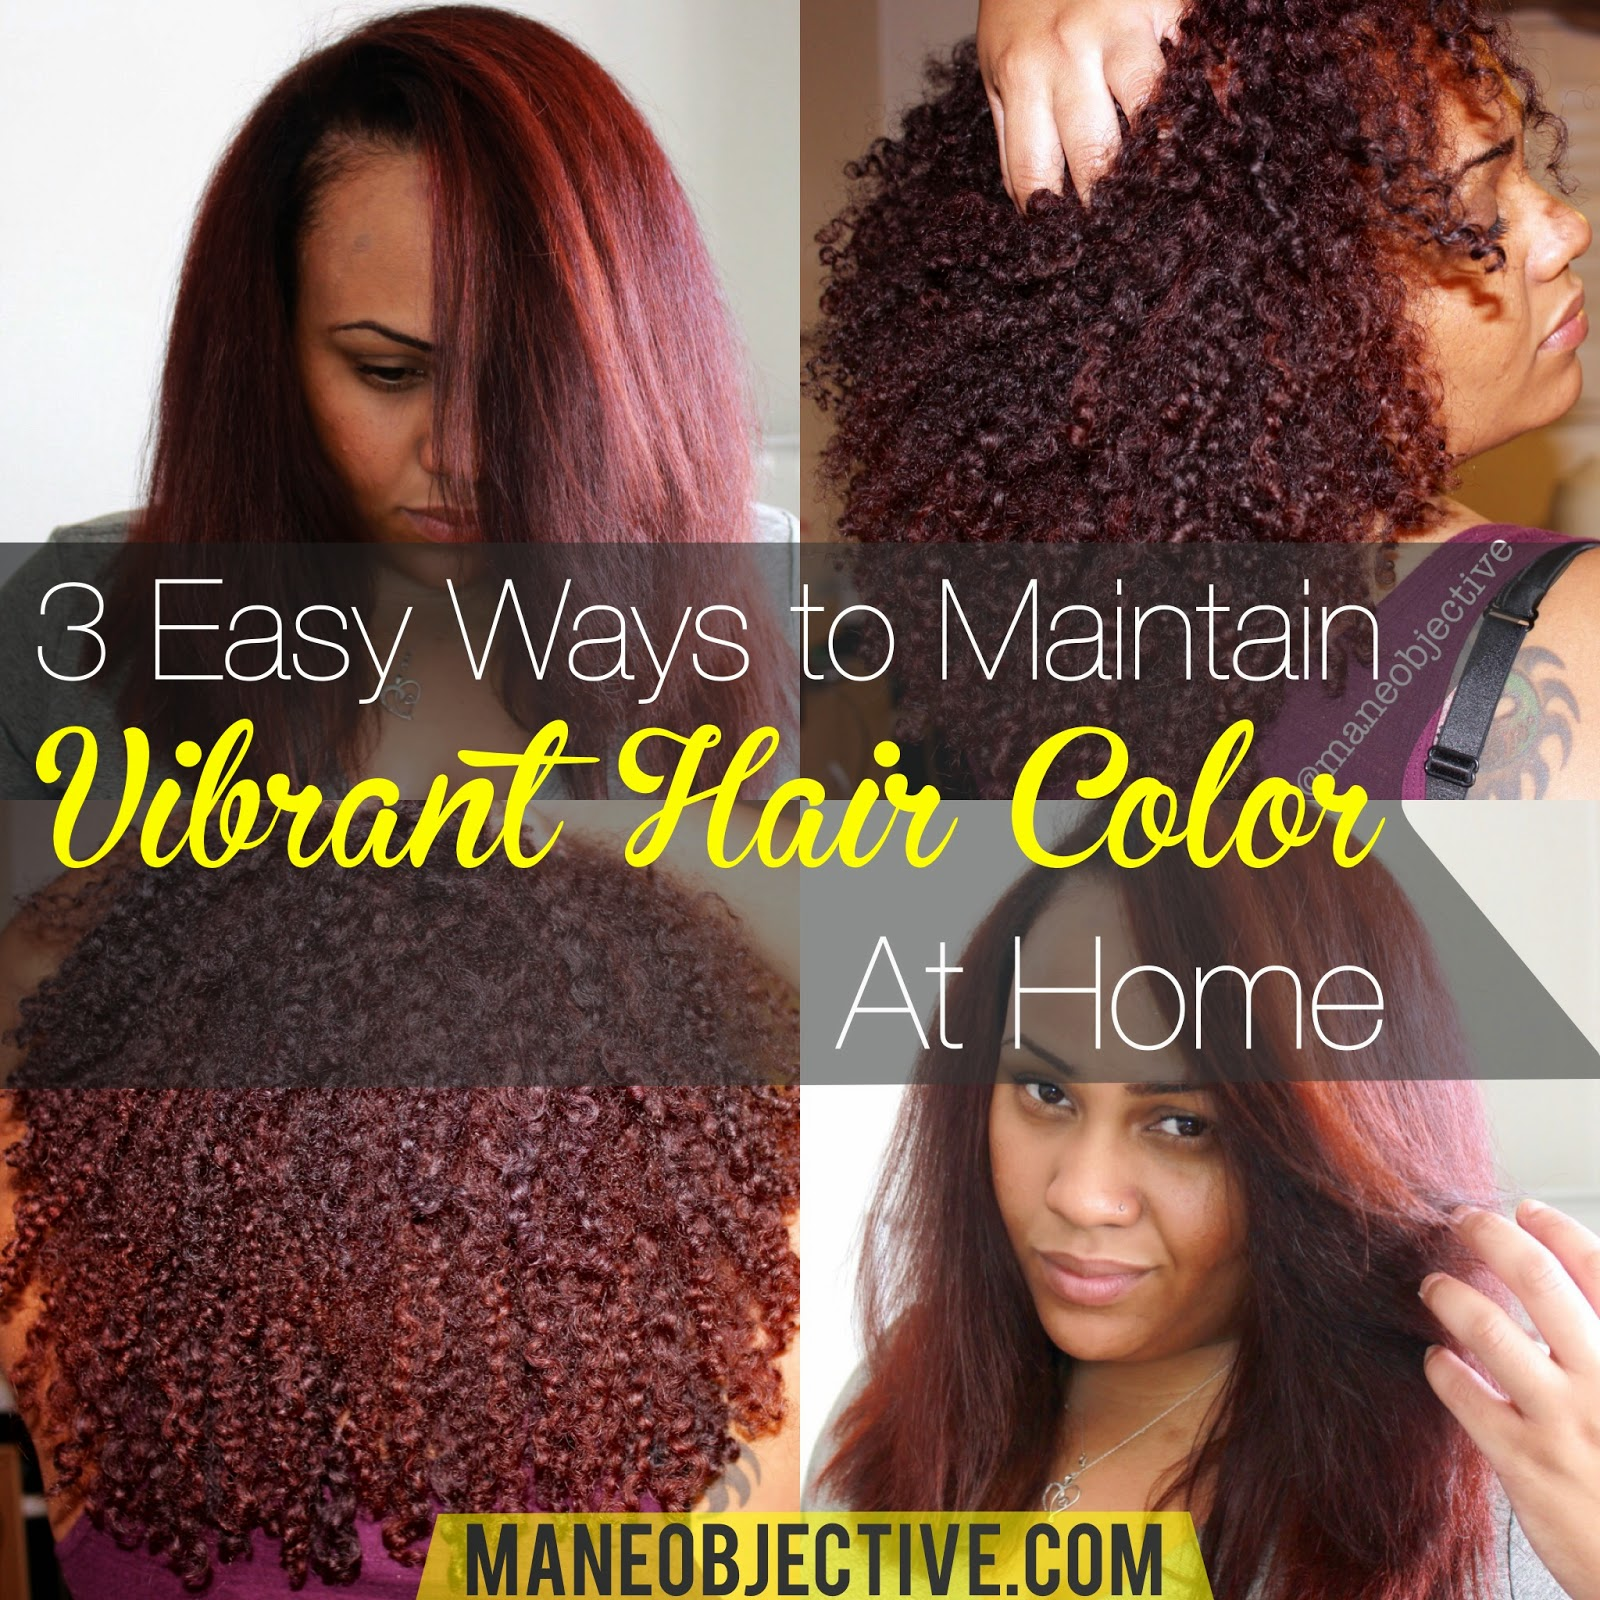 3-easy-ways-to-maintain-vibrant-hair-color-at-home